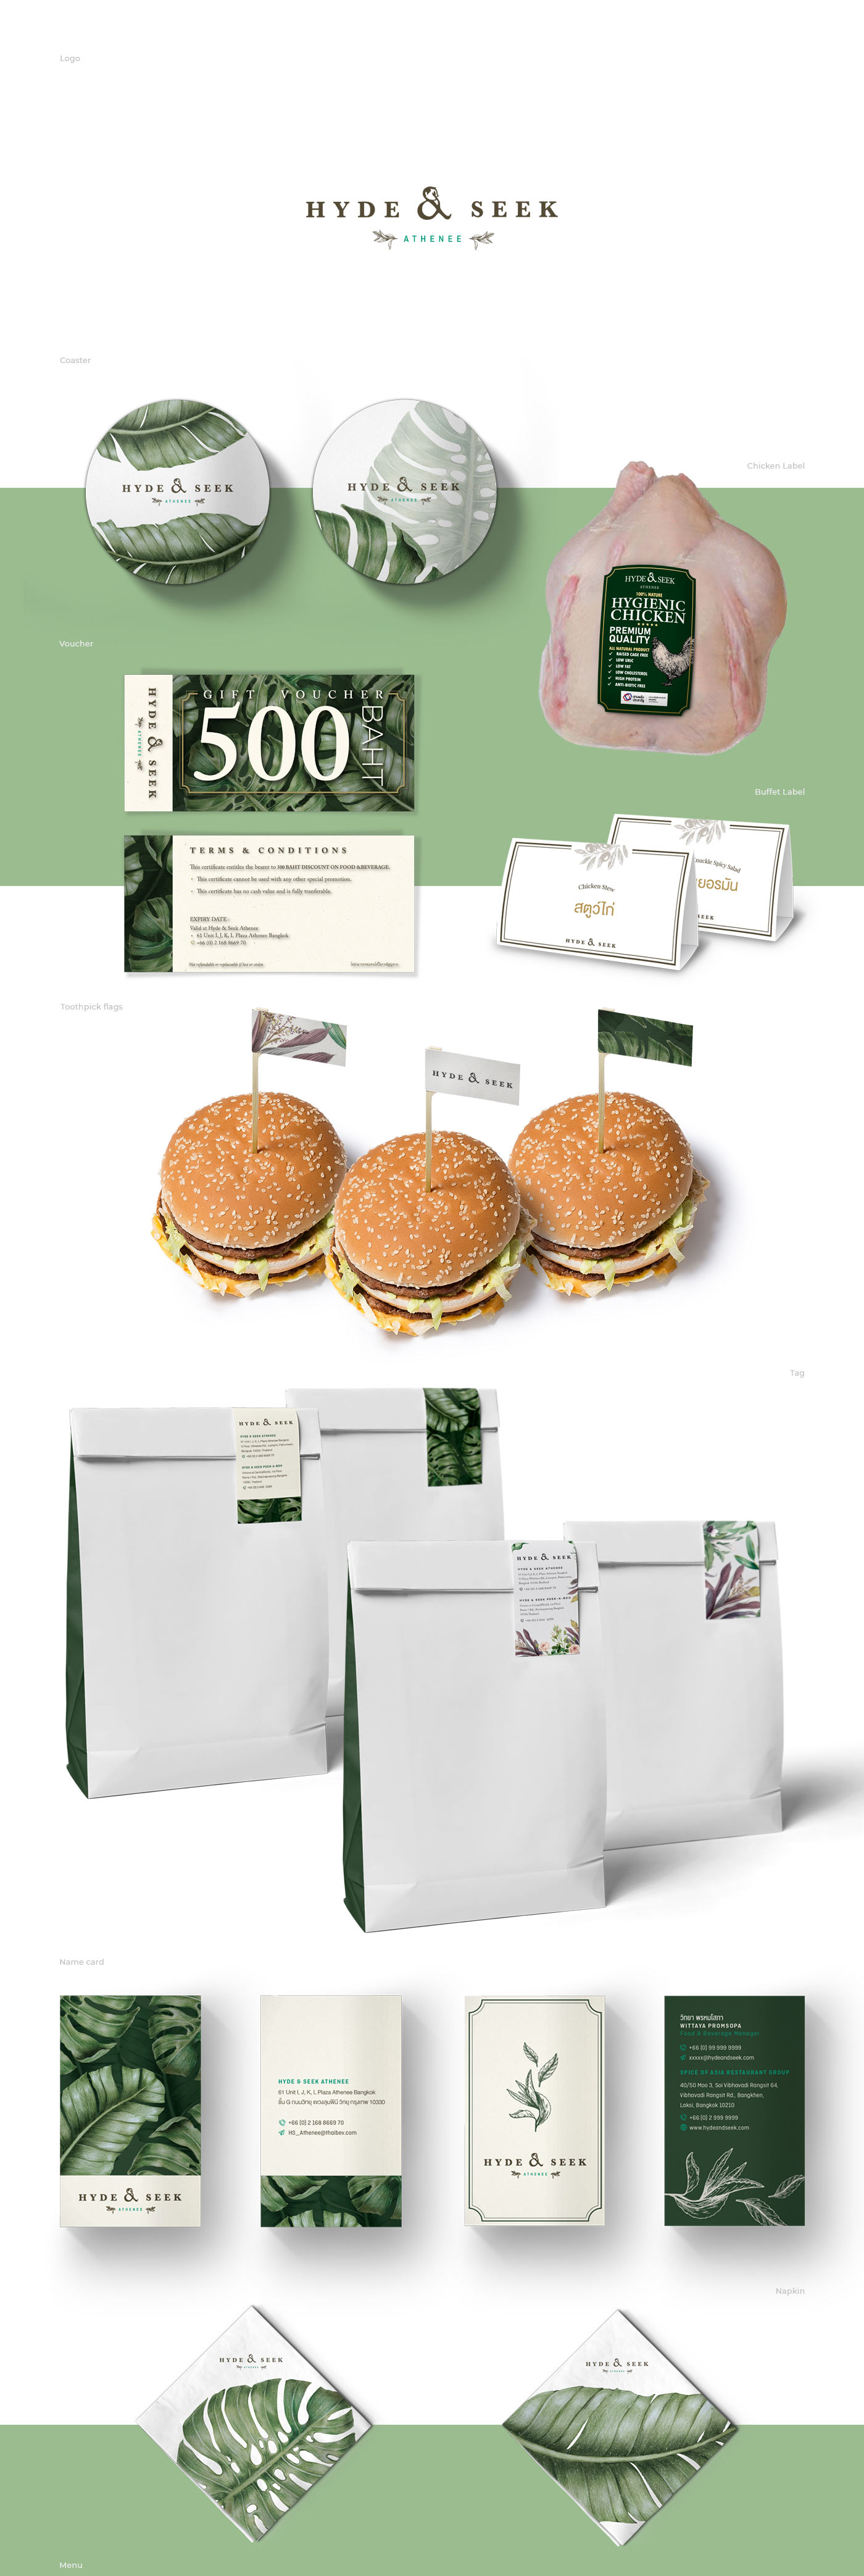 Restaurant_corporate_identity_design